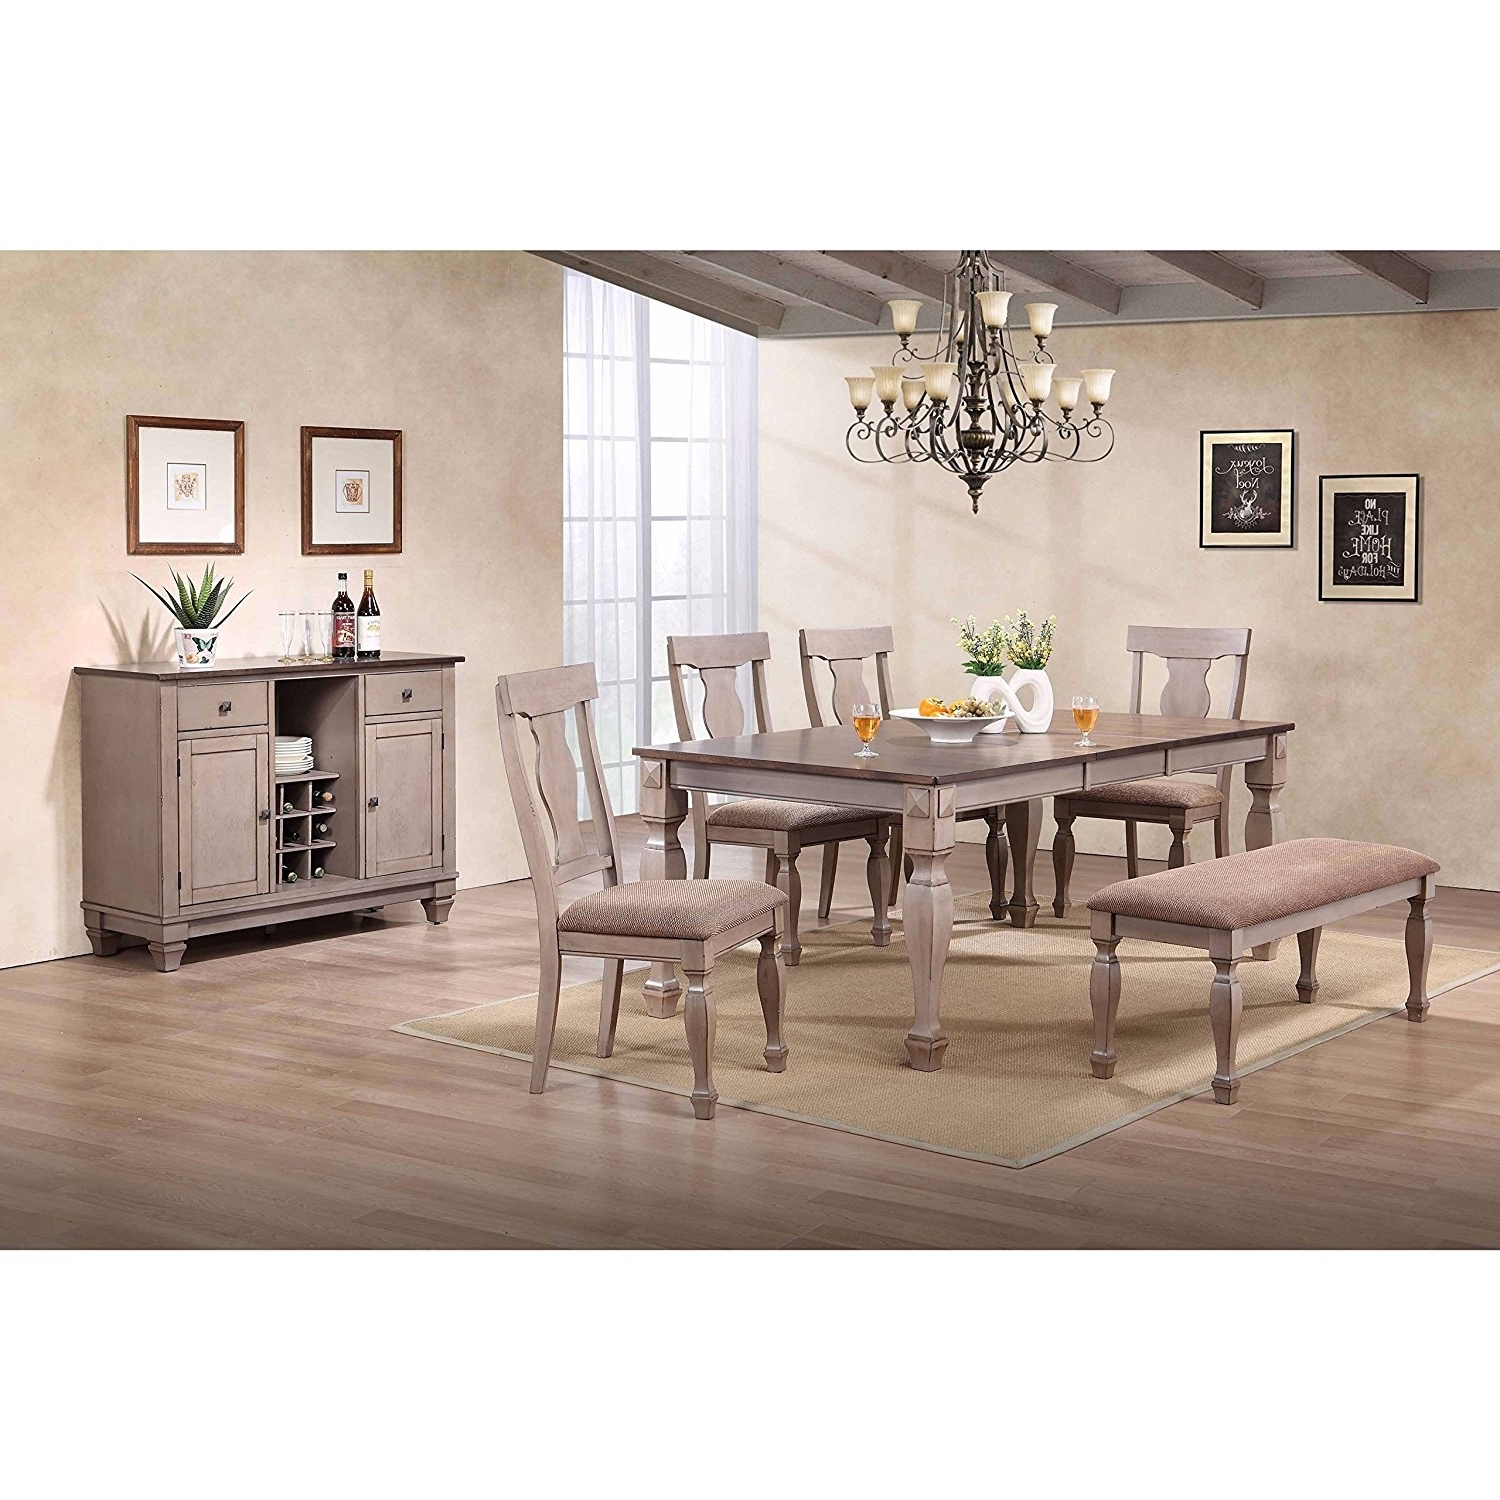 Most Popular Candice Ii 5 Piece Round Dining Sets With Slat Back Side Chairs Inside Cheap Two Tone Dining Set, Find Two Tone Dining Set Deals On Line At (View 11 of 25)